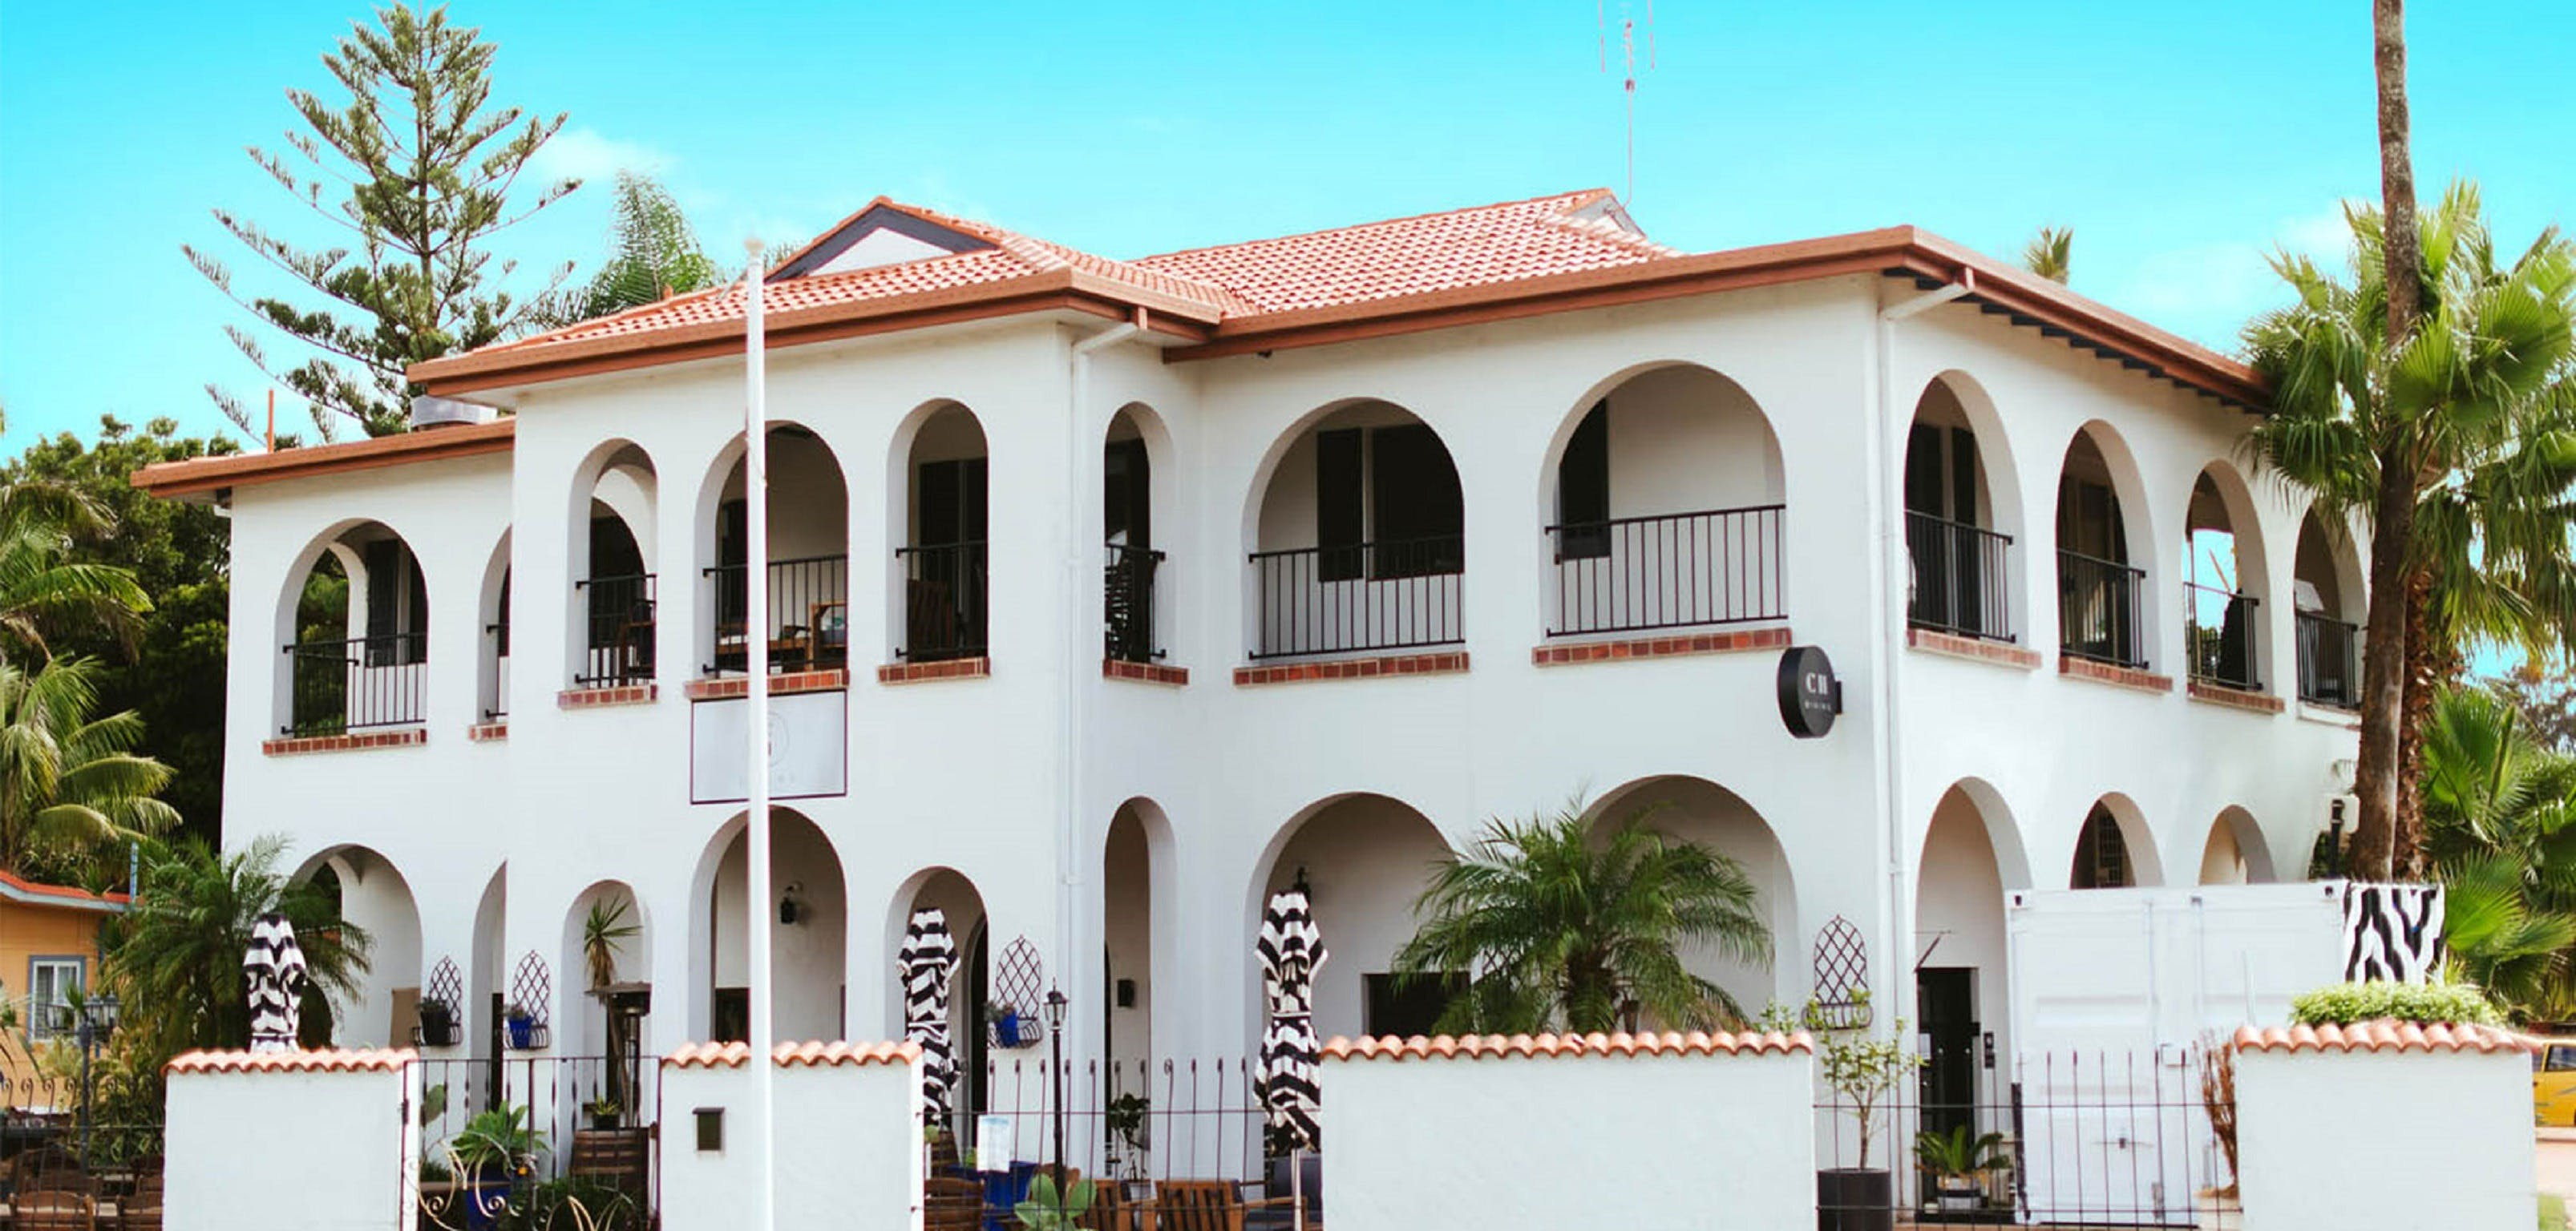 The Med Crescent Head - Accommodation Resorts